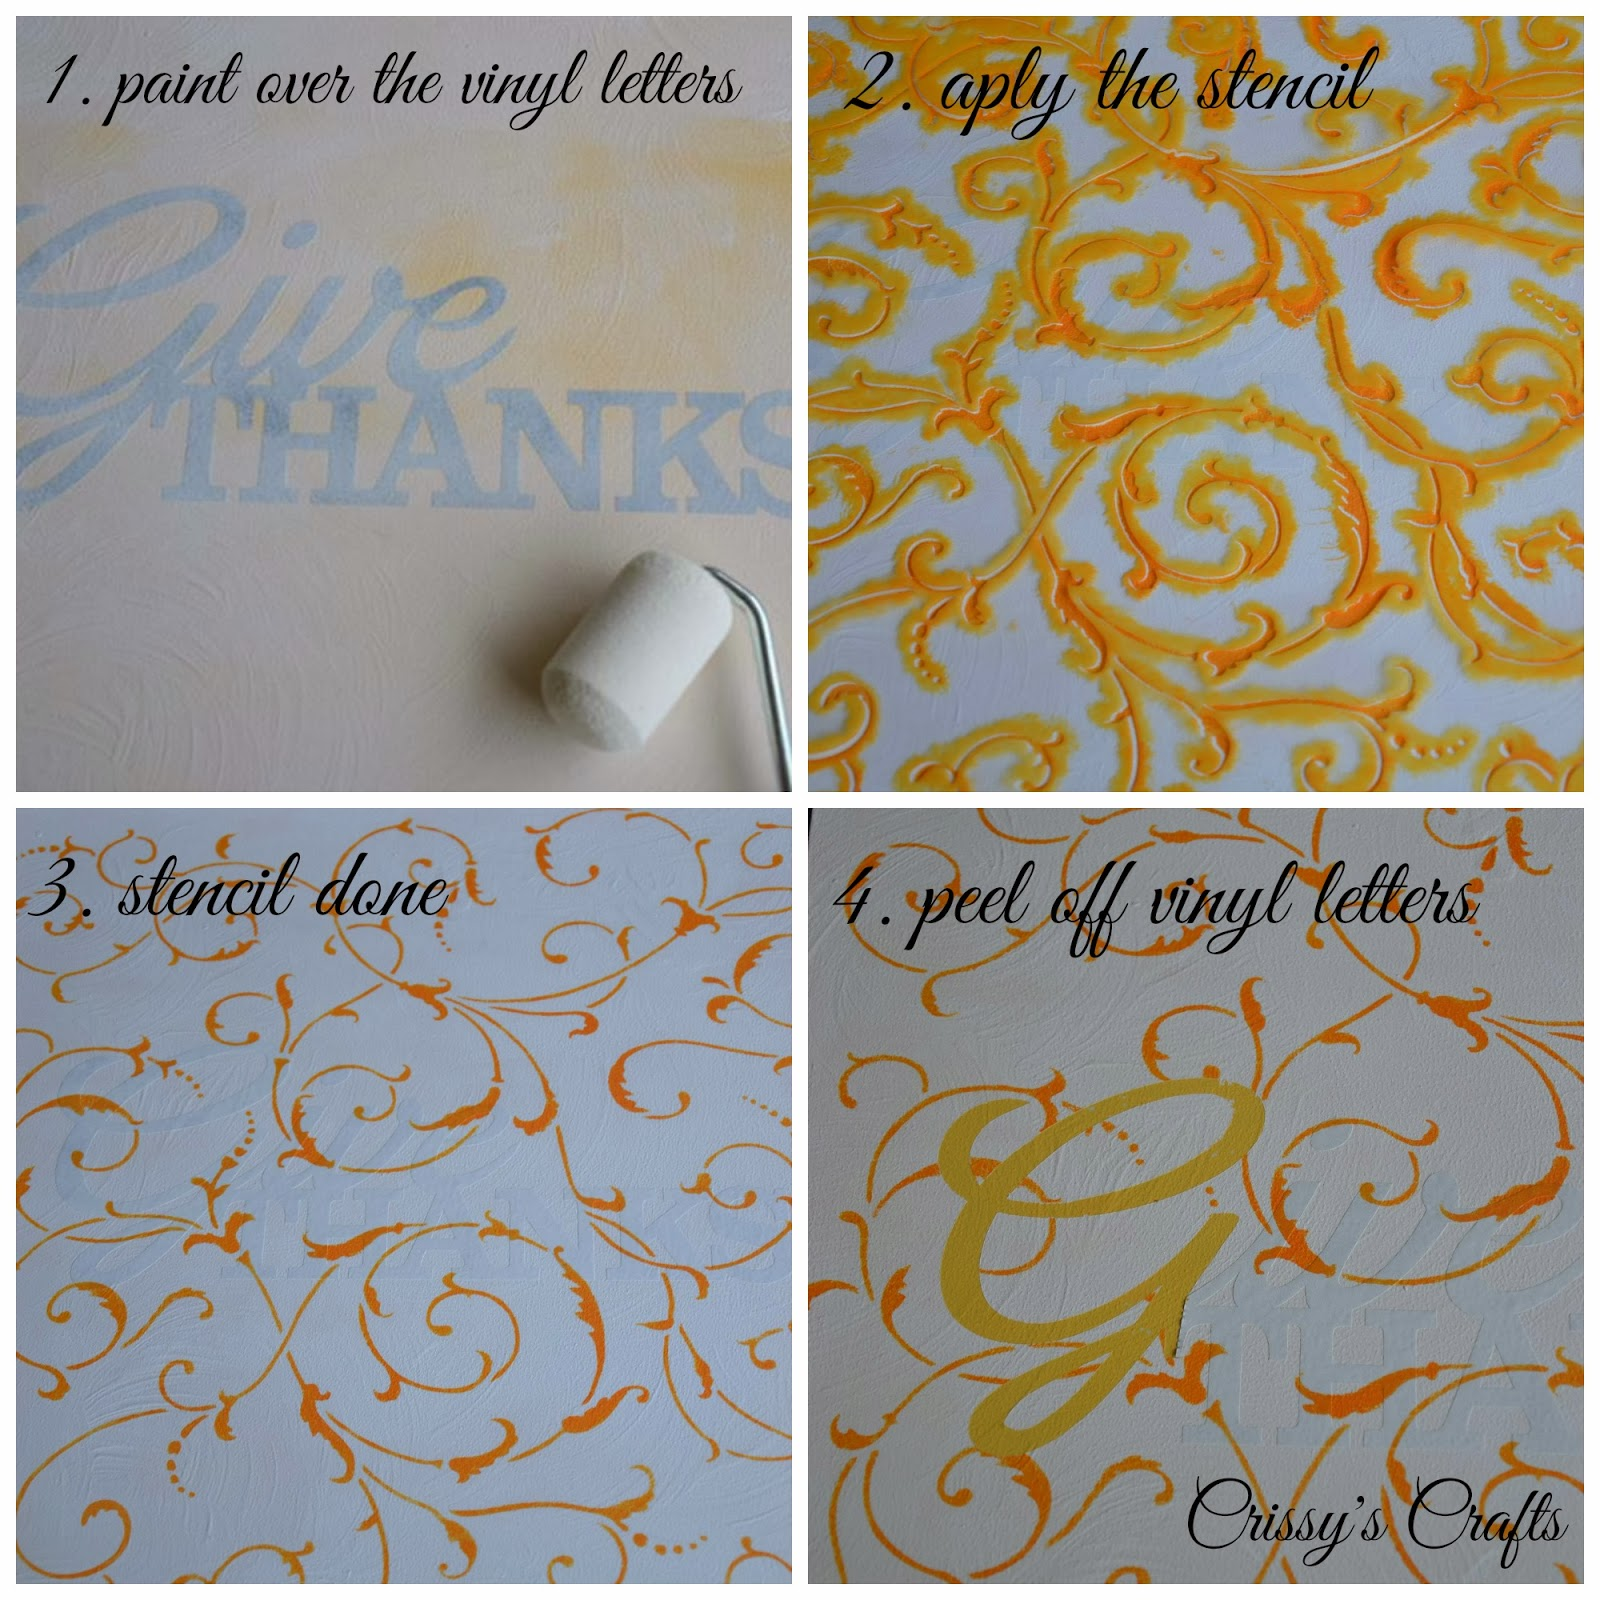 Crissy's Crafts: Give Thanks Wall Art